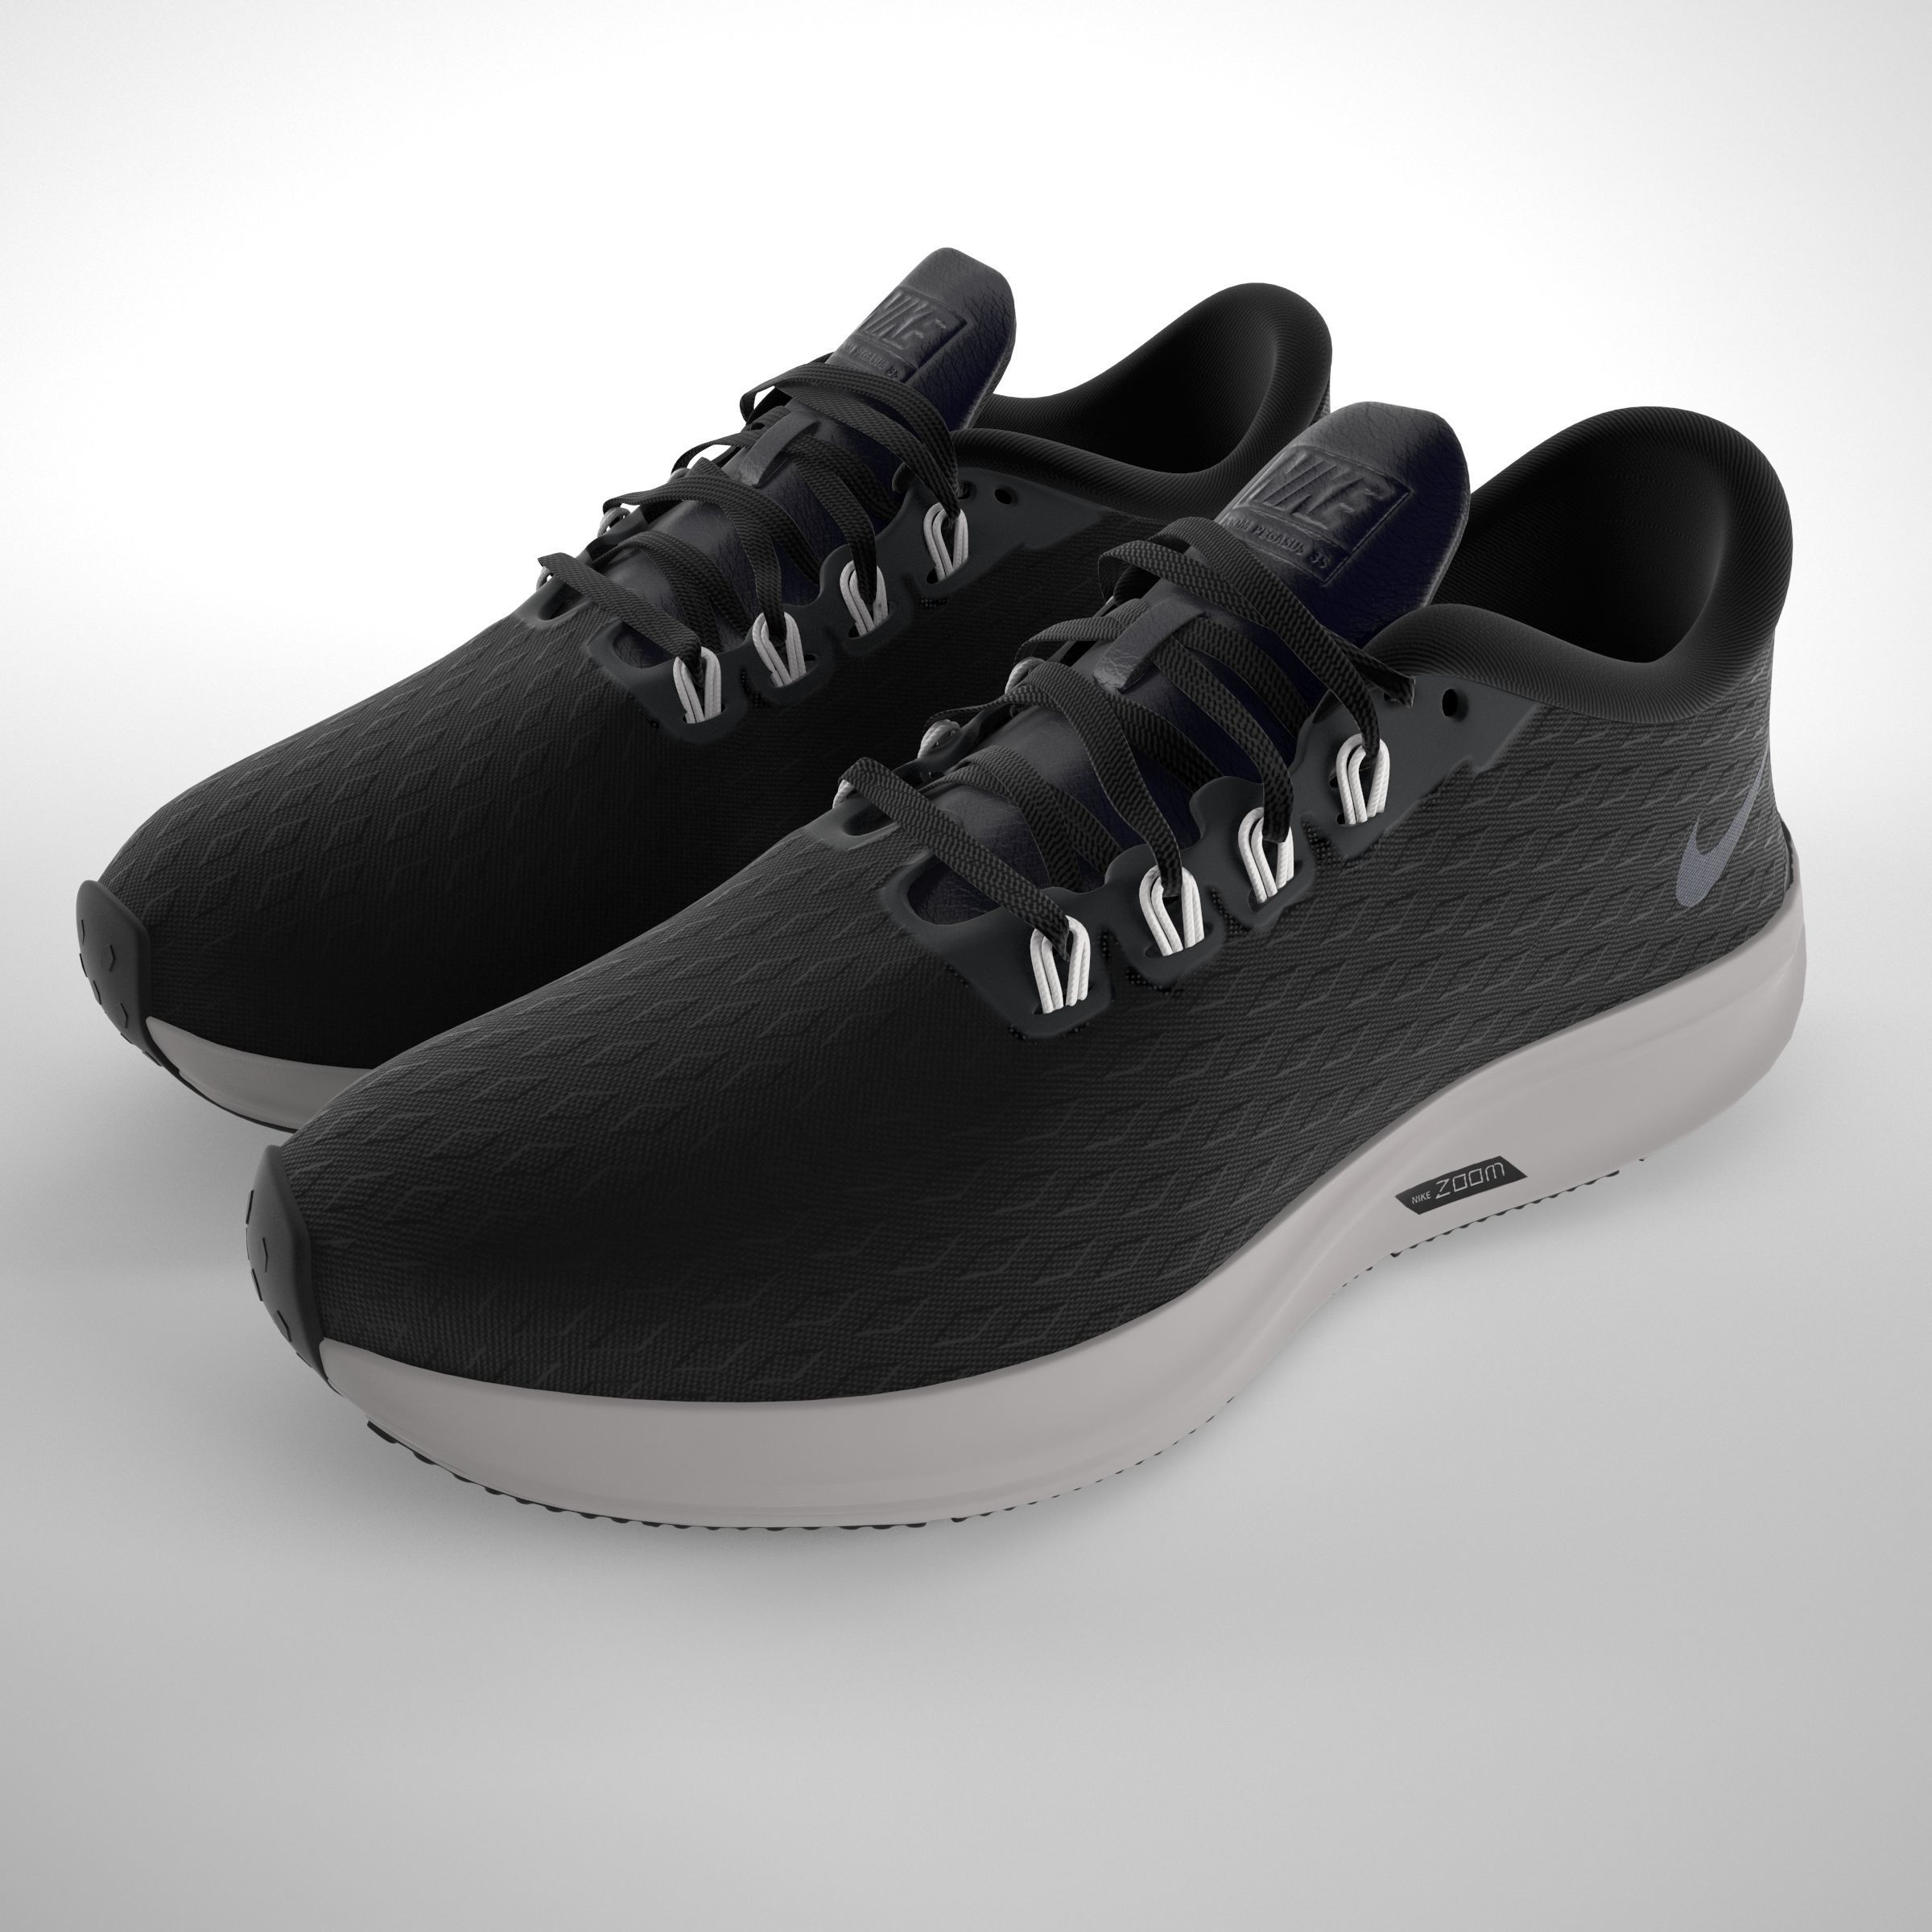 Conception innovante eae0c ba836 Nike Air Zoom Pegasus 35 PBR | 3D model